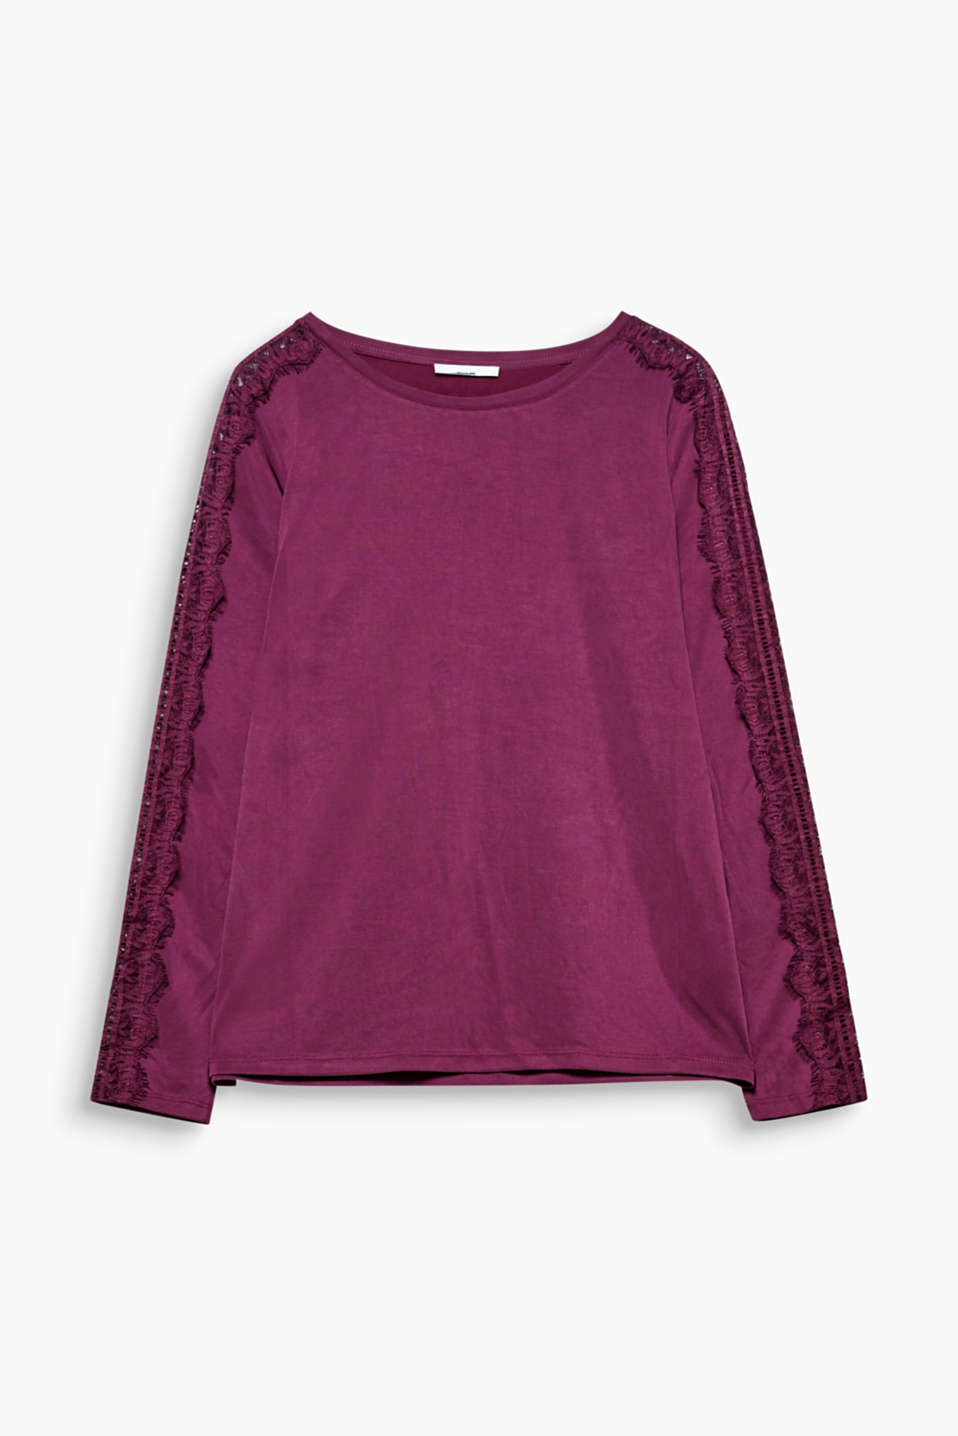 A silky smooth touch and the silk trimmed sleeves give this long sleeve top an exquisite note.